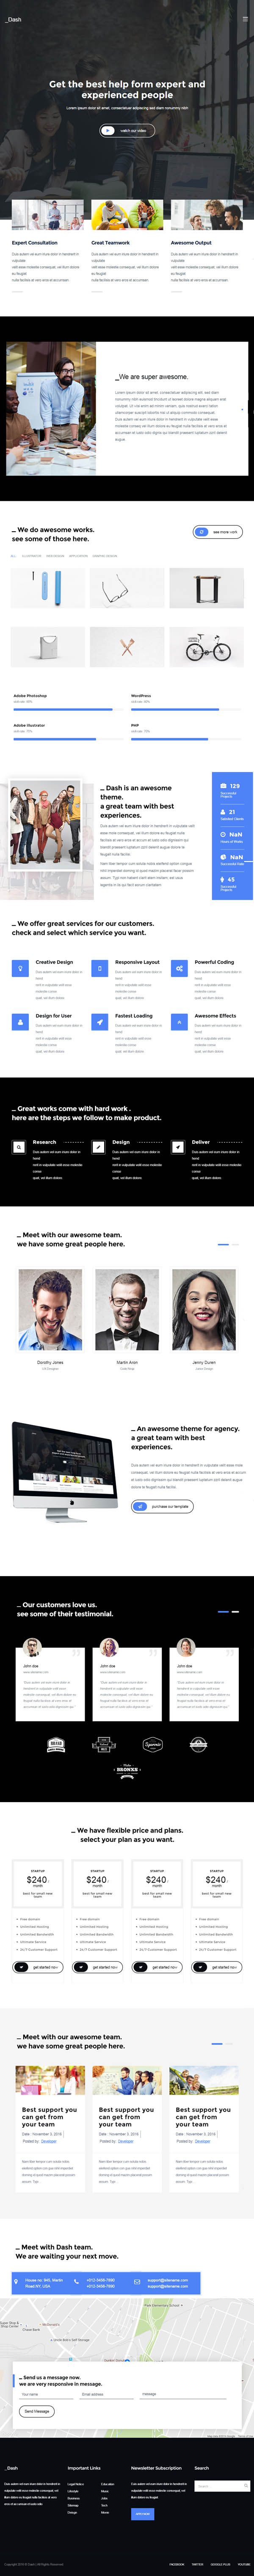 Dash – Corporate Agency Business Firm Theme